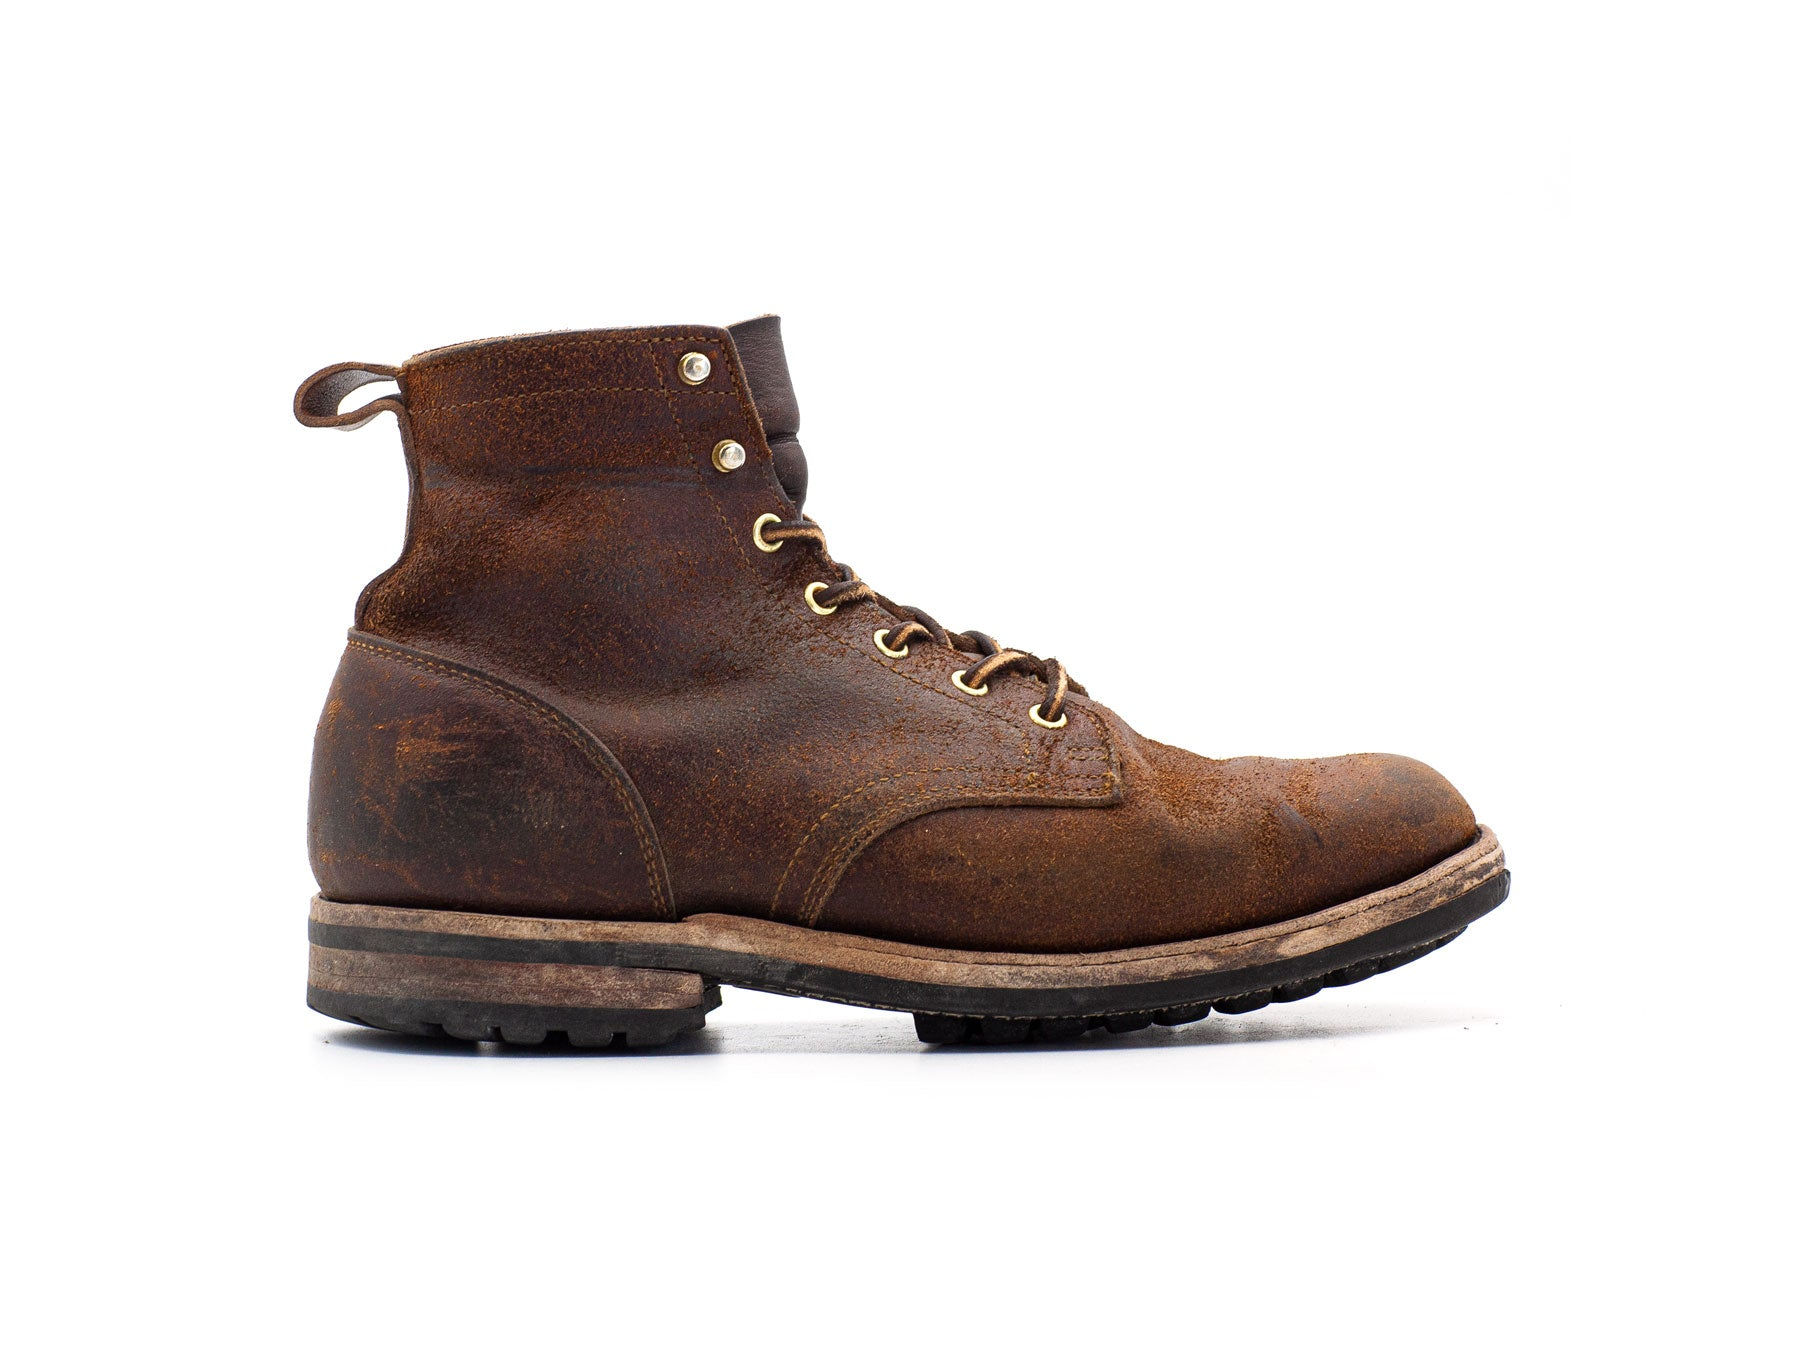 Chestnut waxed flesh boot worn in